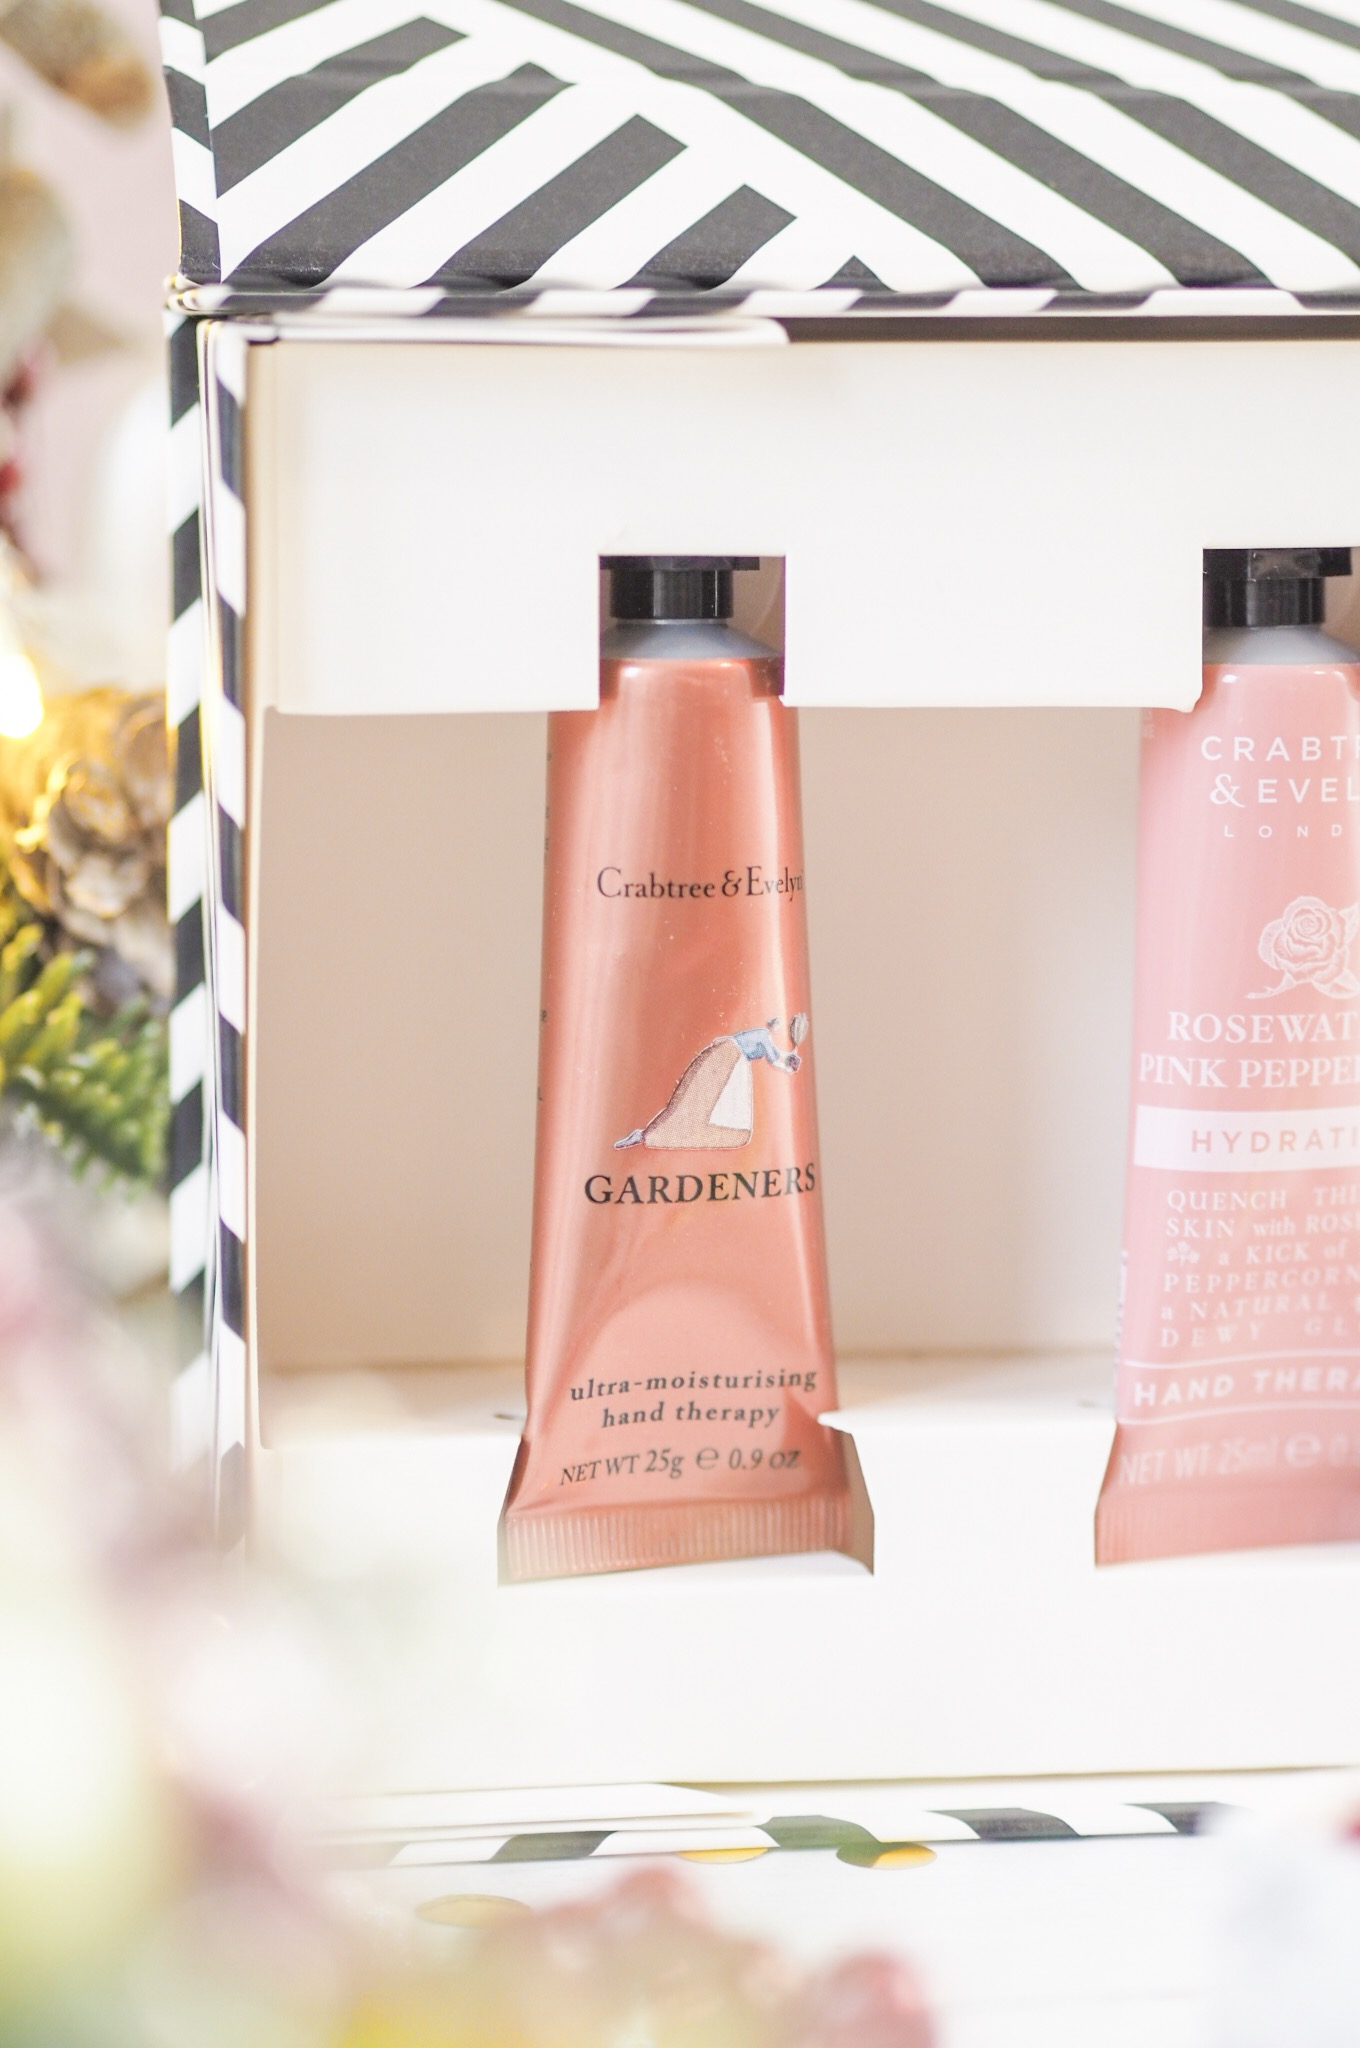 Crabtree & Evelyn Hand's Delight Hand Therapy Trio Review